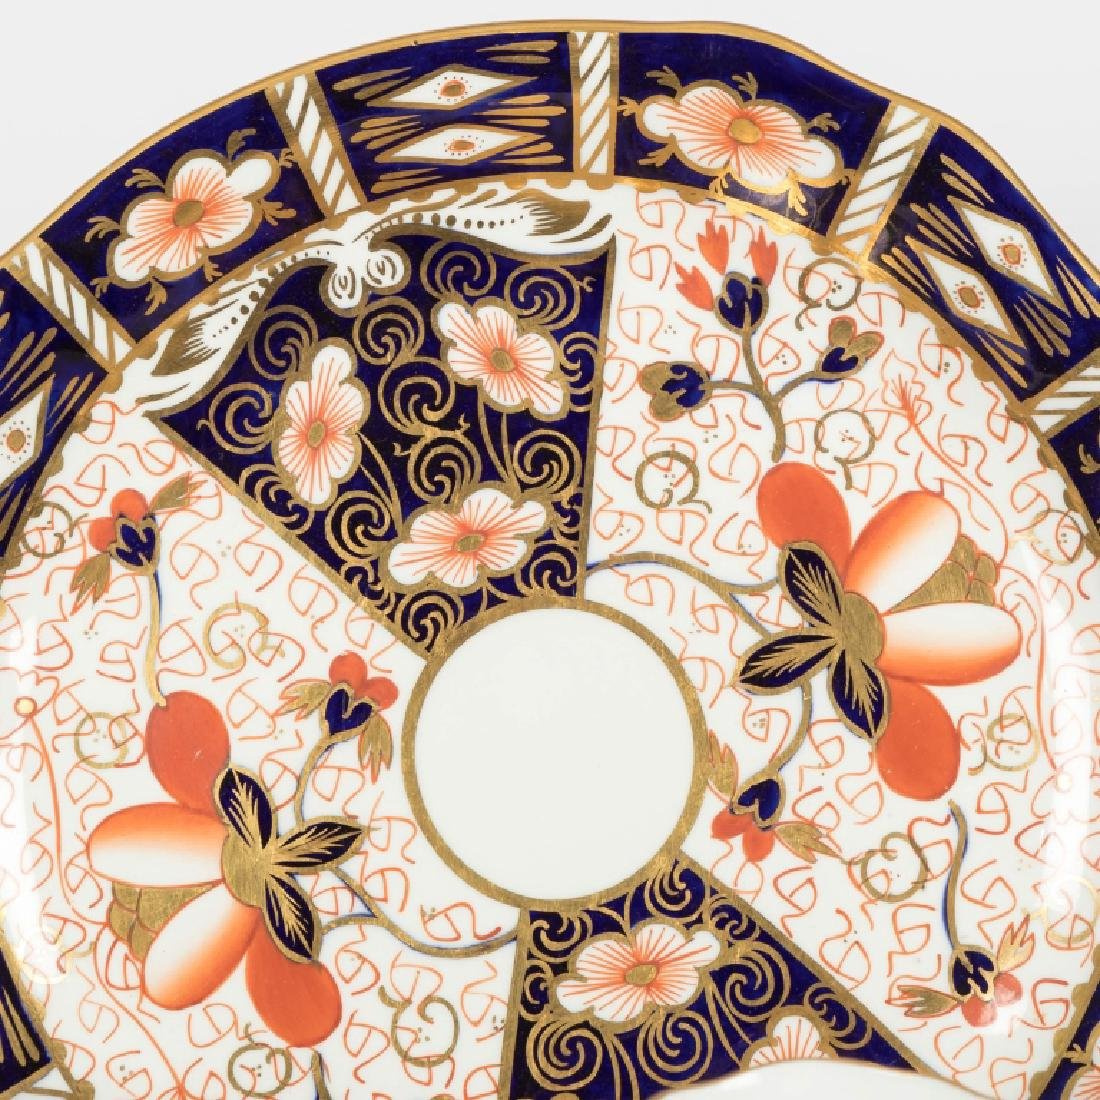 54 Piece Royal Crown Derby Old Imari Luncheon Set - 4